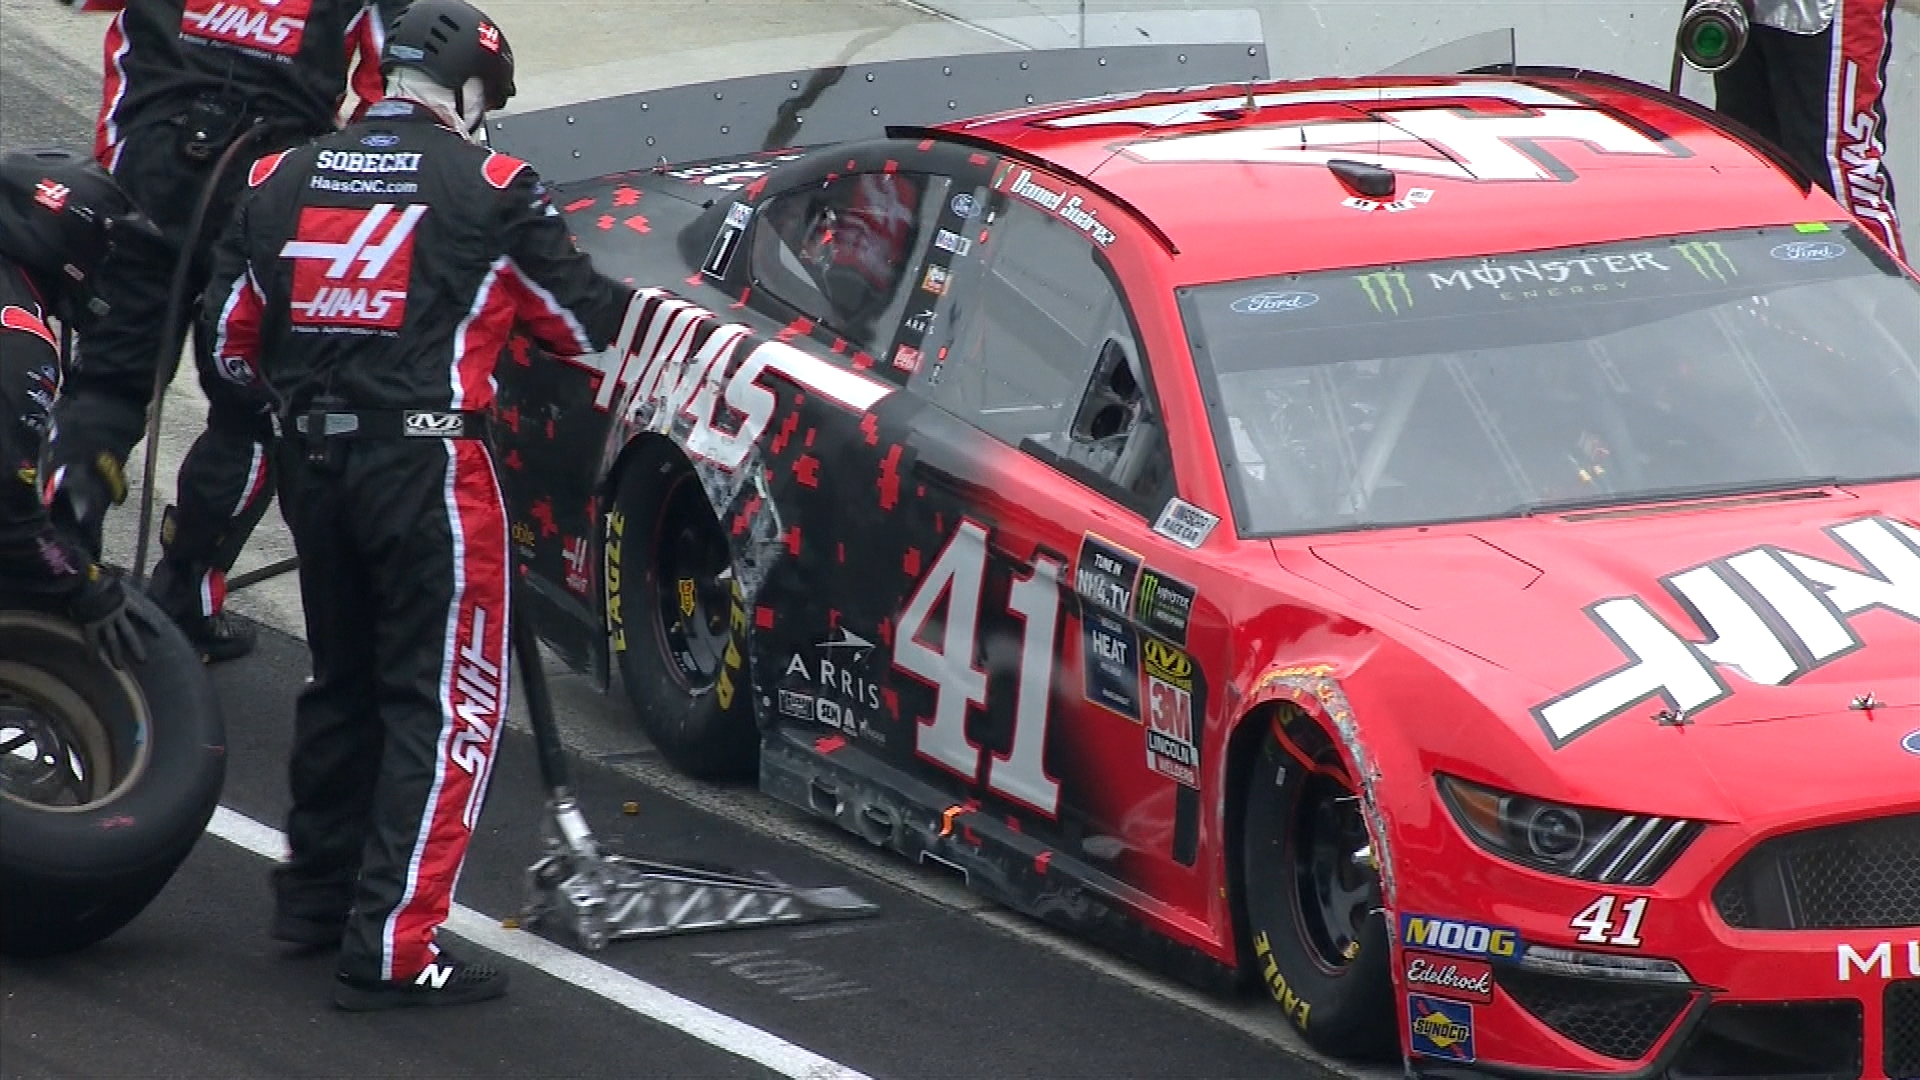 Daniel Suarez makes early contact with wall during Brickyard